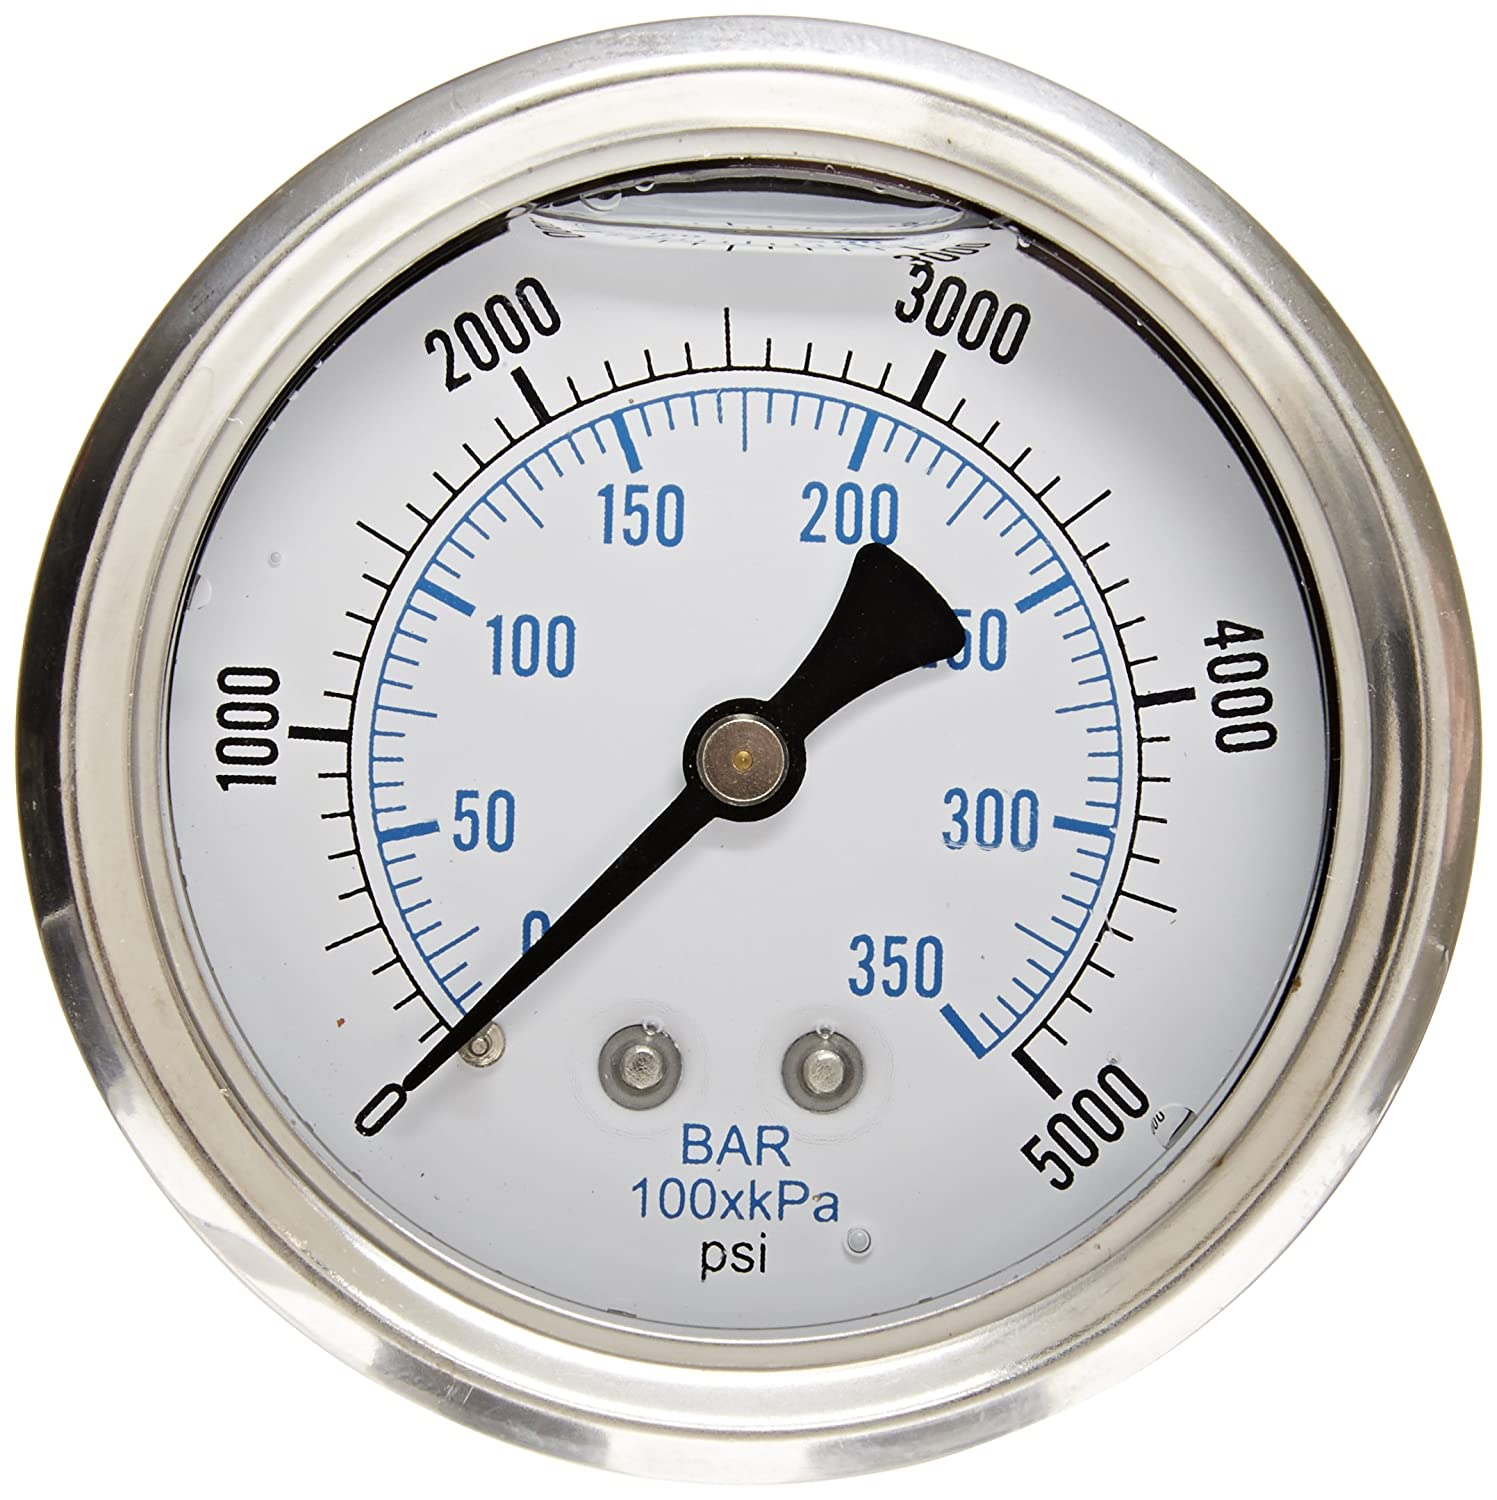 PIC Gauge PRO 202L 254R Glycerin Filled Industrial Center Back Mount Pressure Gauge with Stainless Steel Case Brass Internals Plastic Lens 2 1 2 Dial Size 1 4 Male NPT 0 5000 psi